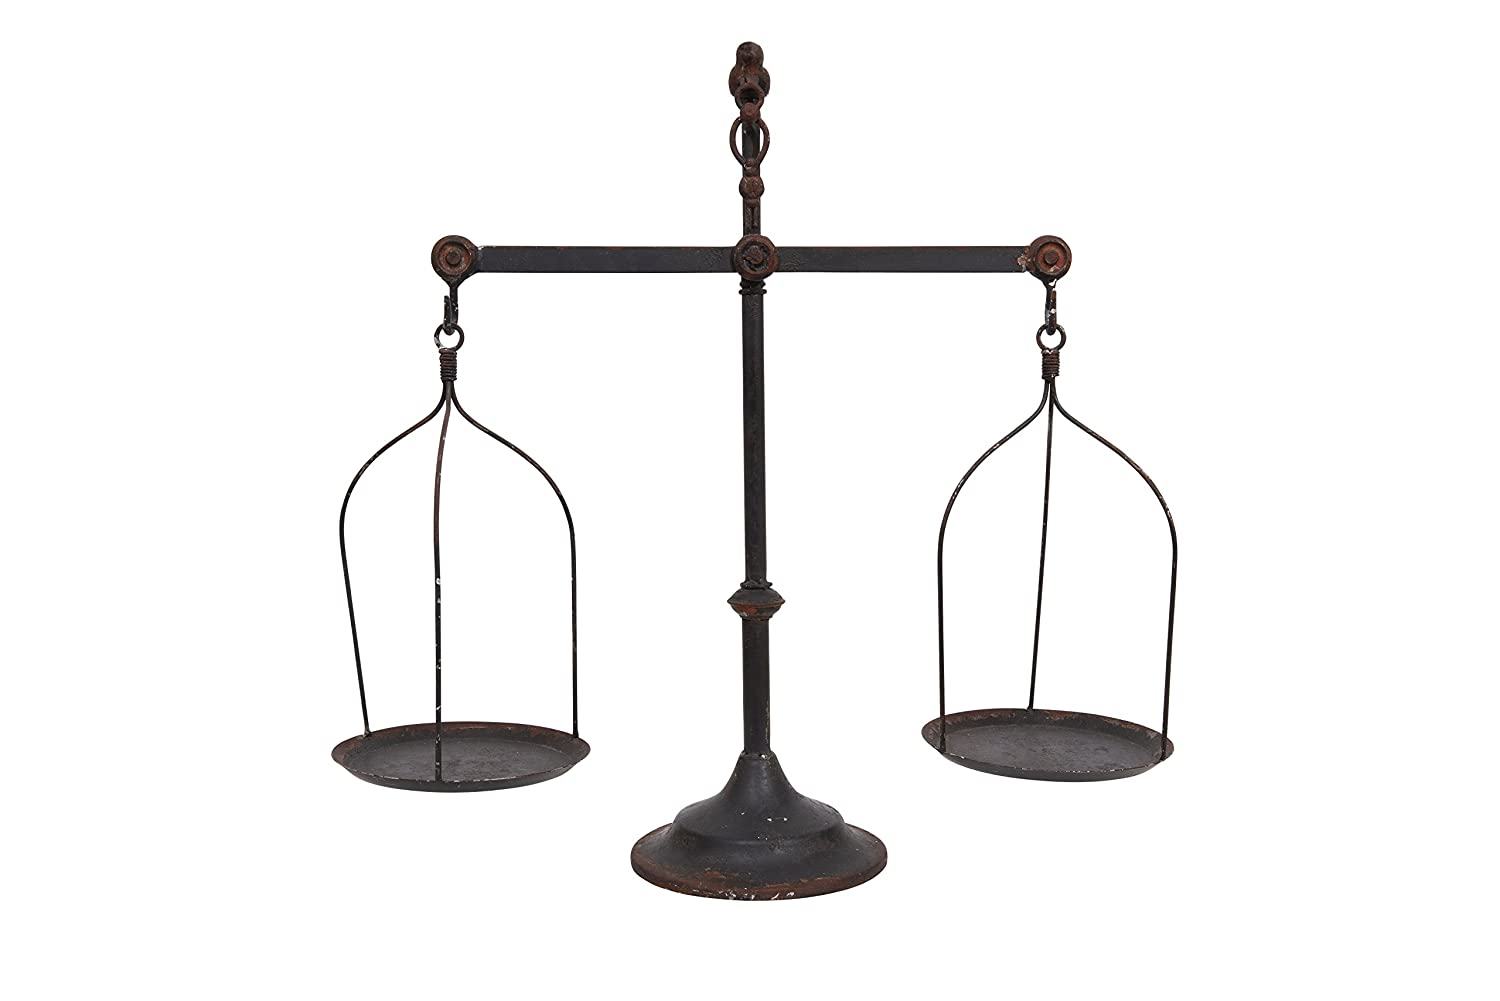 Creative Co-op Black Decorative Antique Iron Balance Scale with Bird